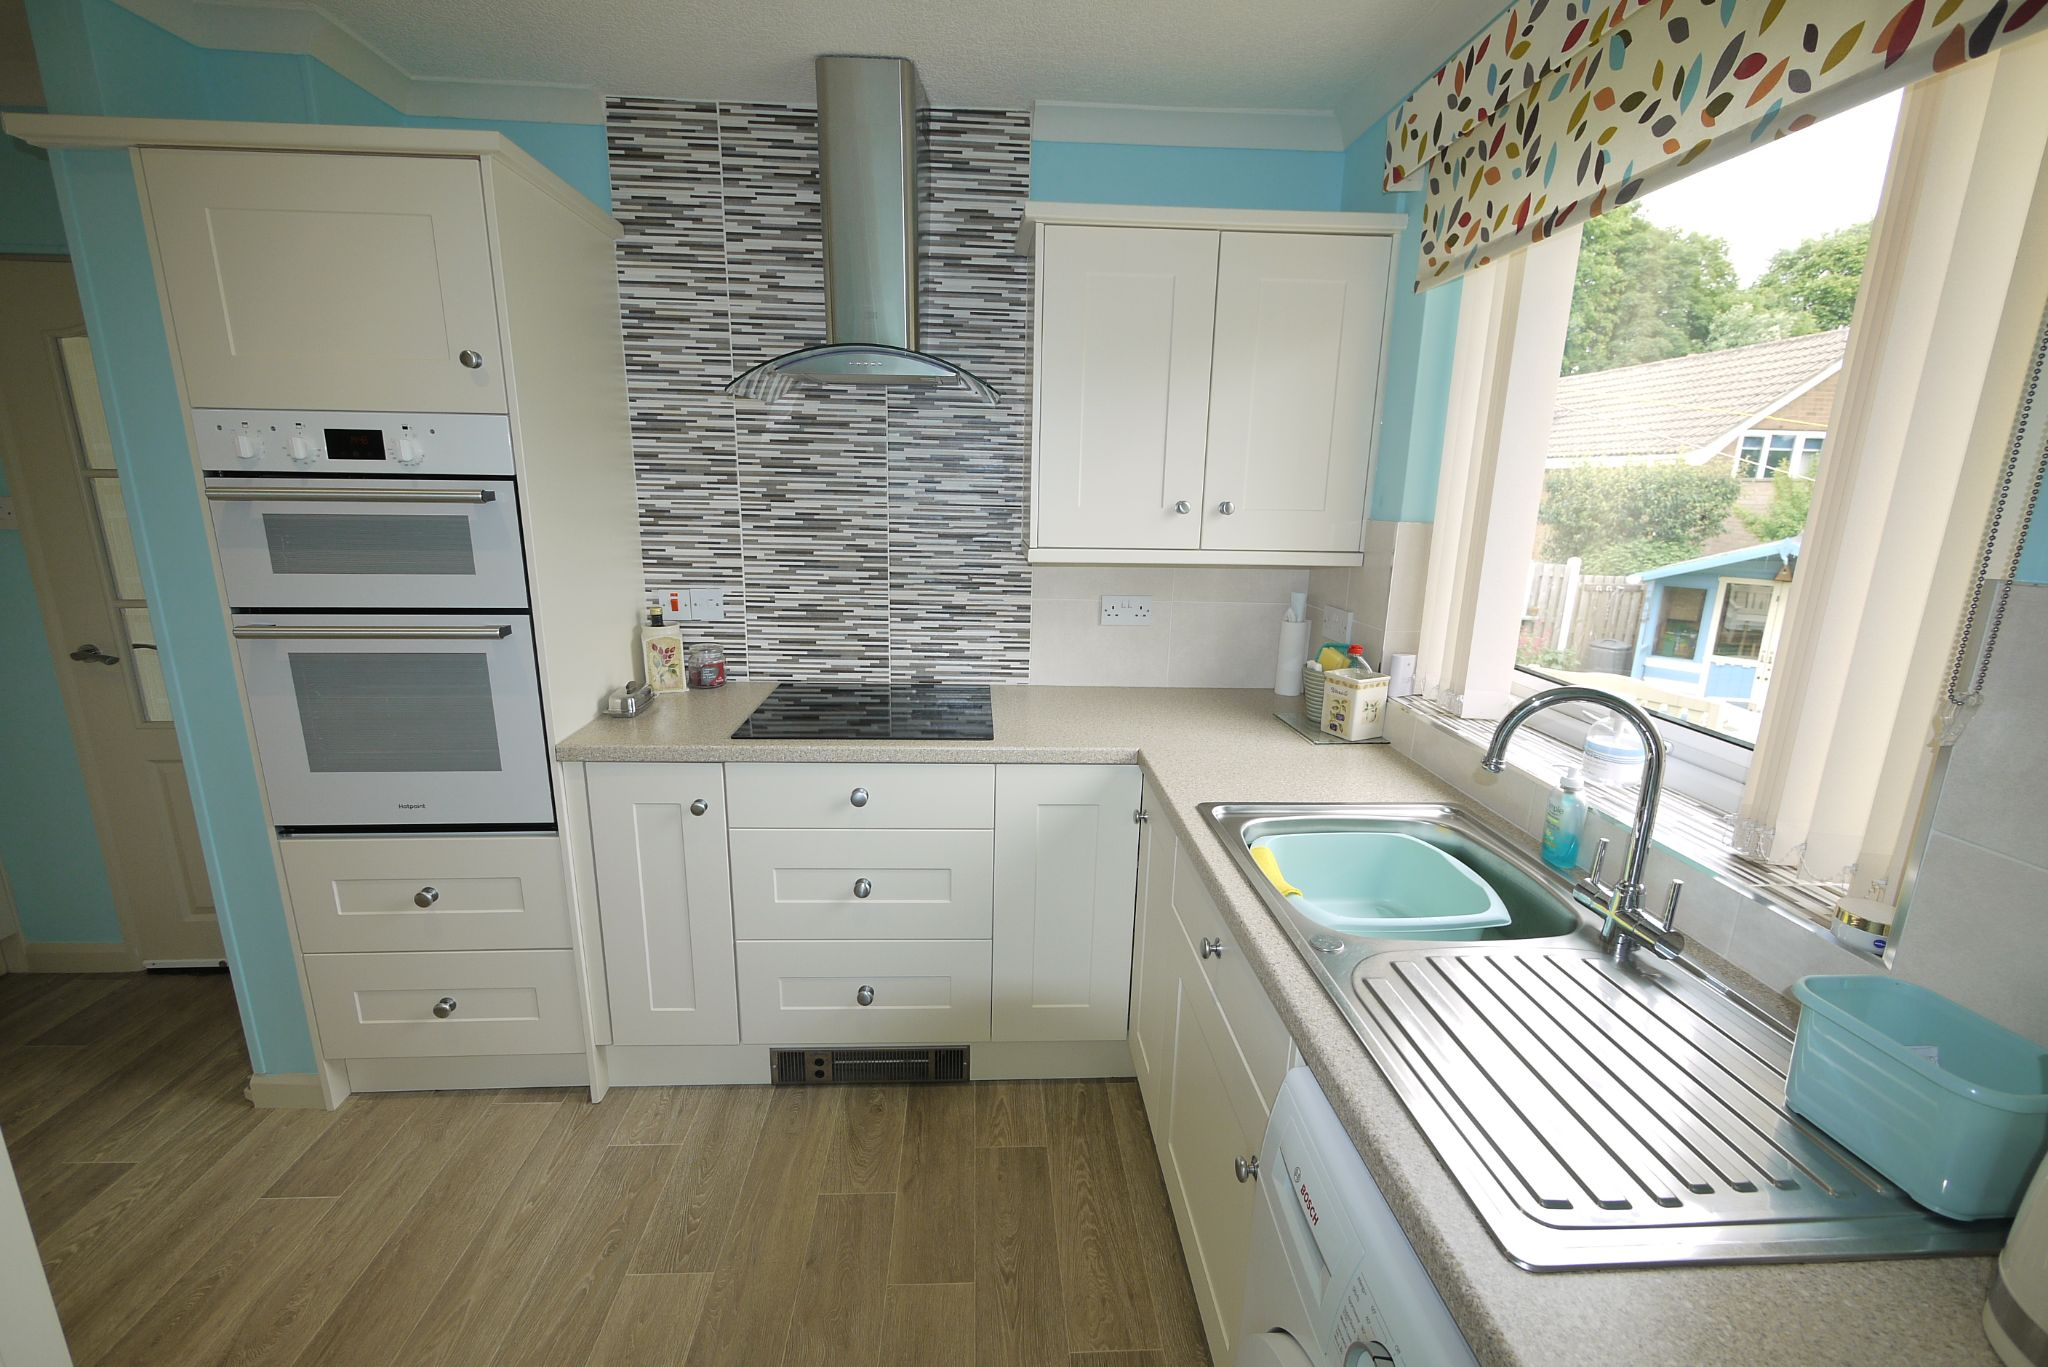 2 bedroom detached bungalow SSTC in Brighouse - Kitchen 2.